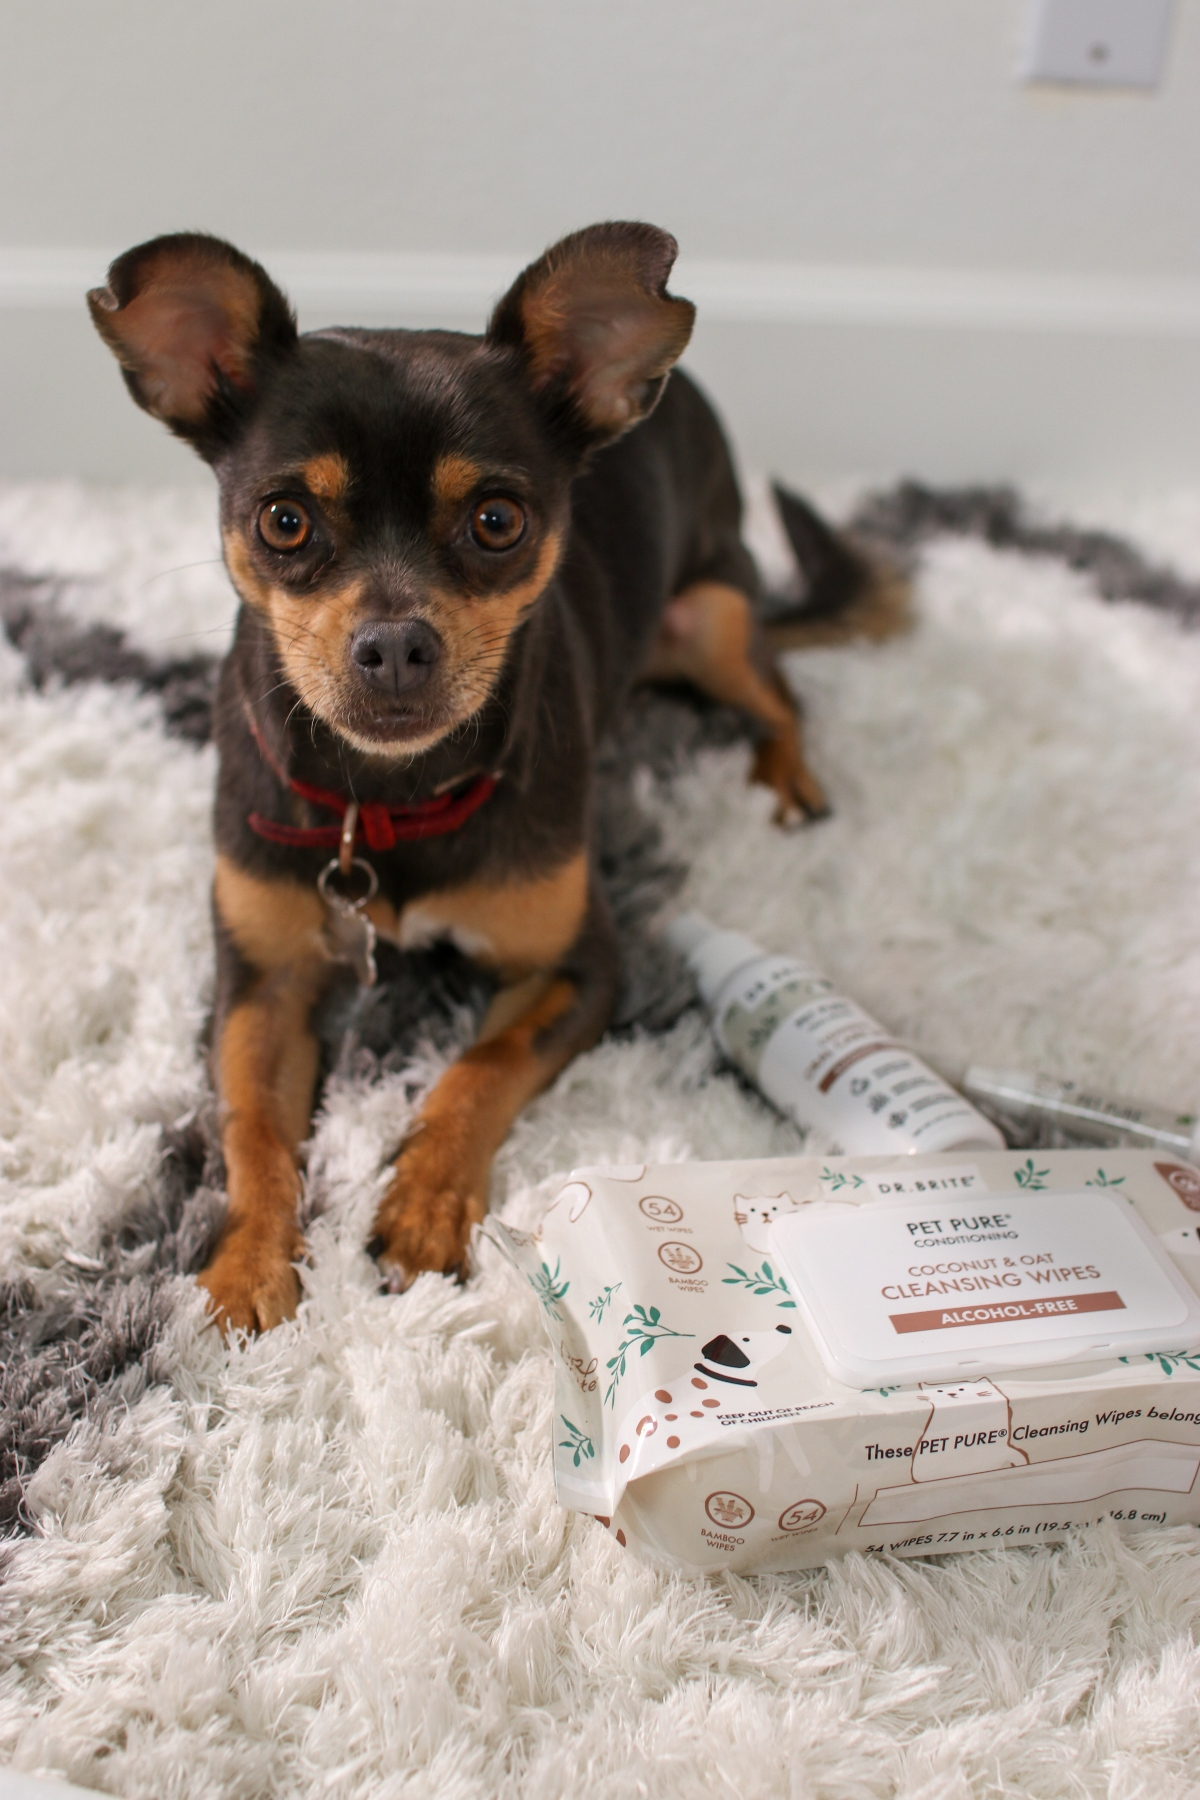 Dr. Brite Pet Care Products | Products made with love for your furry friend